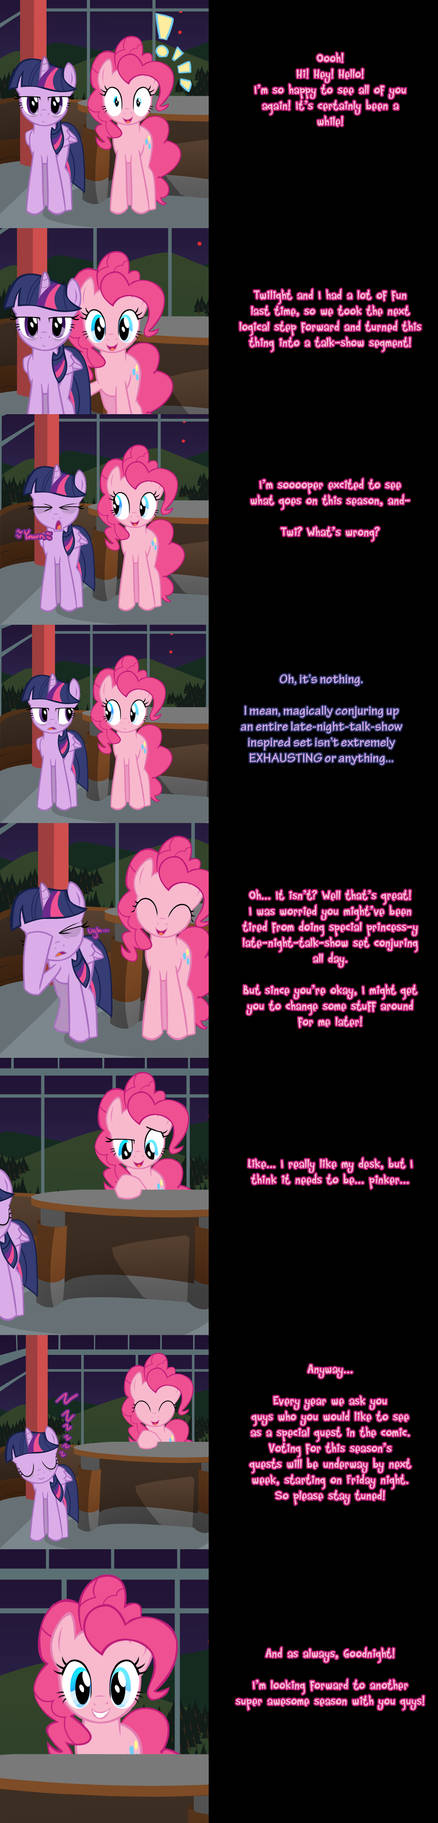 Pinkie Says Goodnight - New Things! by Undead-Niklos on